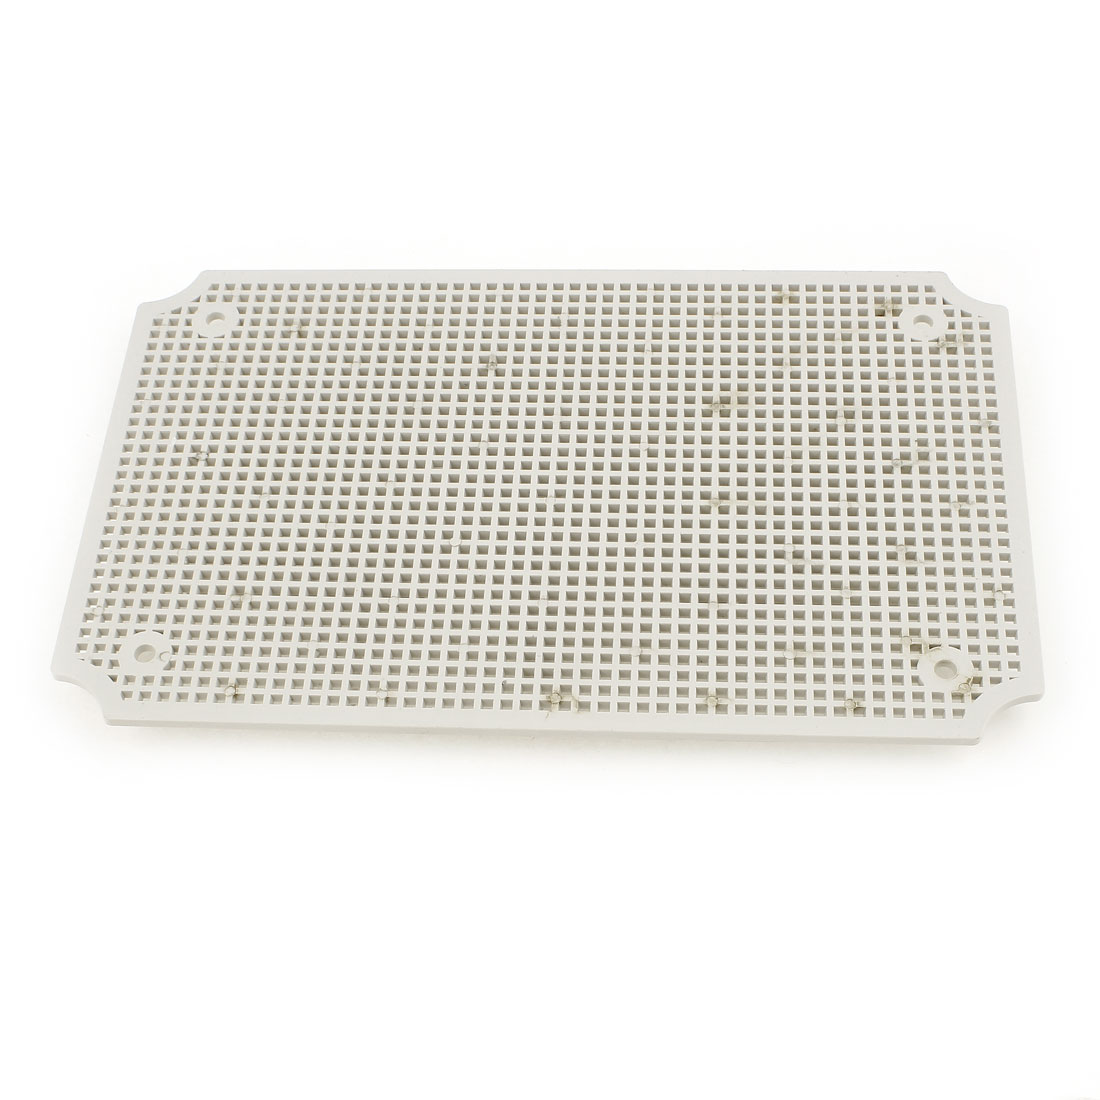 Gray Plastic Mesh Enclosure Mounting Plate for 280 x 190mm Junction Box